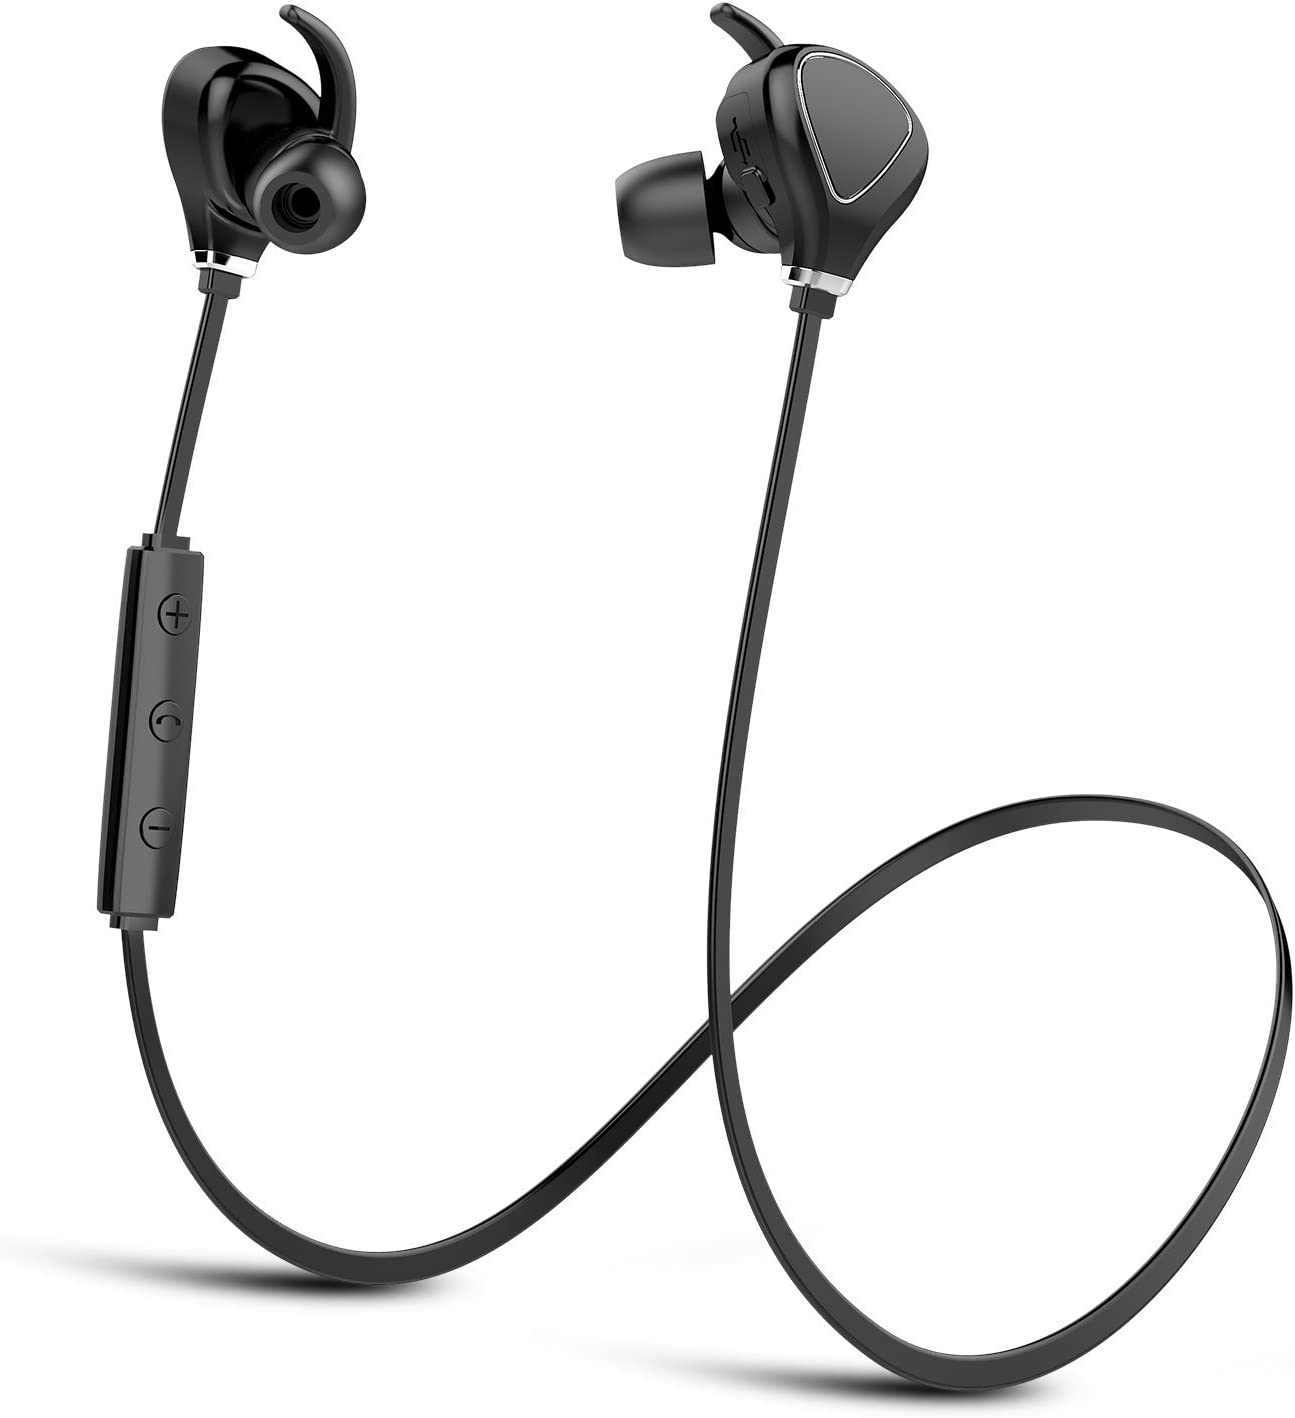 Amazon Com Bluetooth Headphones Running Headphones Compatible With Iphone Kbtel Best Wireless Sports Earphones W Mic Ipx4 Waterproof For Running Gym Workout 12 Hours Battery Life Black Home Audio Theater